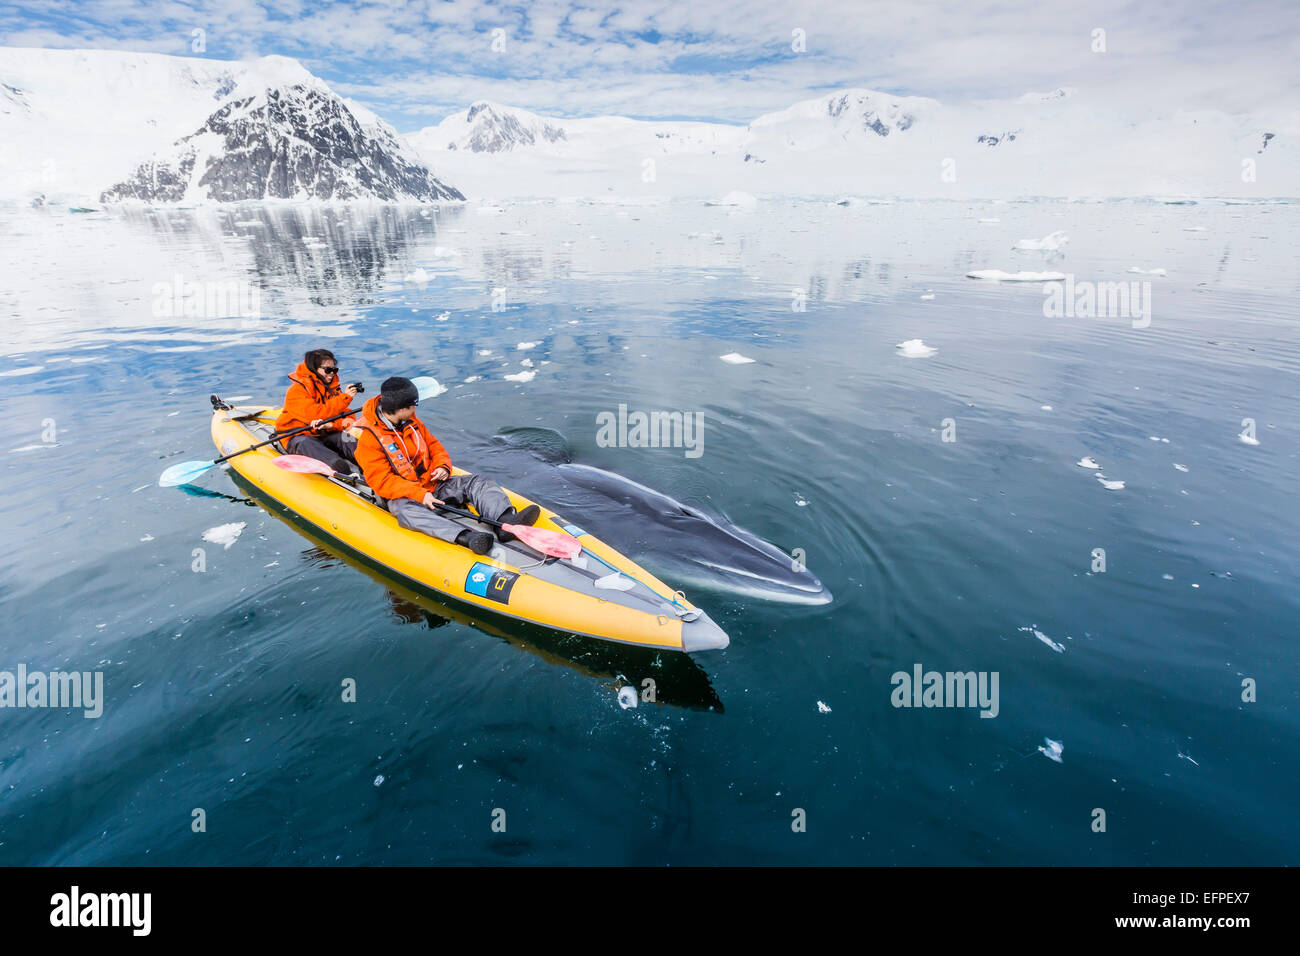 A curious Antarctic minke whale approaches kayakers, in Neko Harbor, Antarctica, Polar Regions - Stock Image